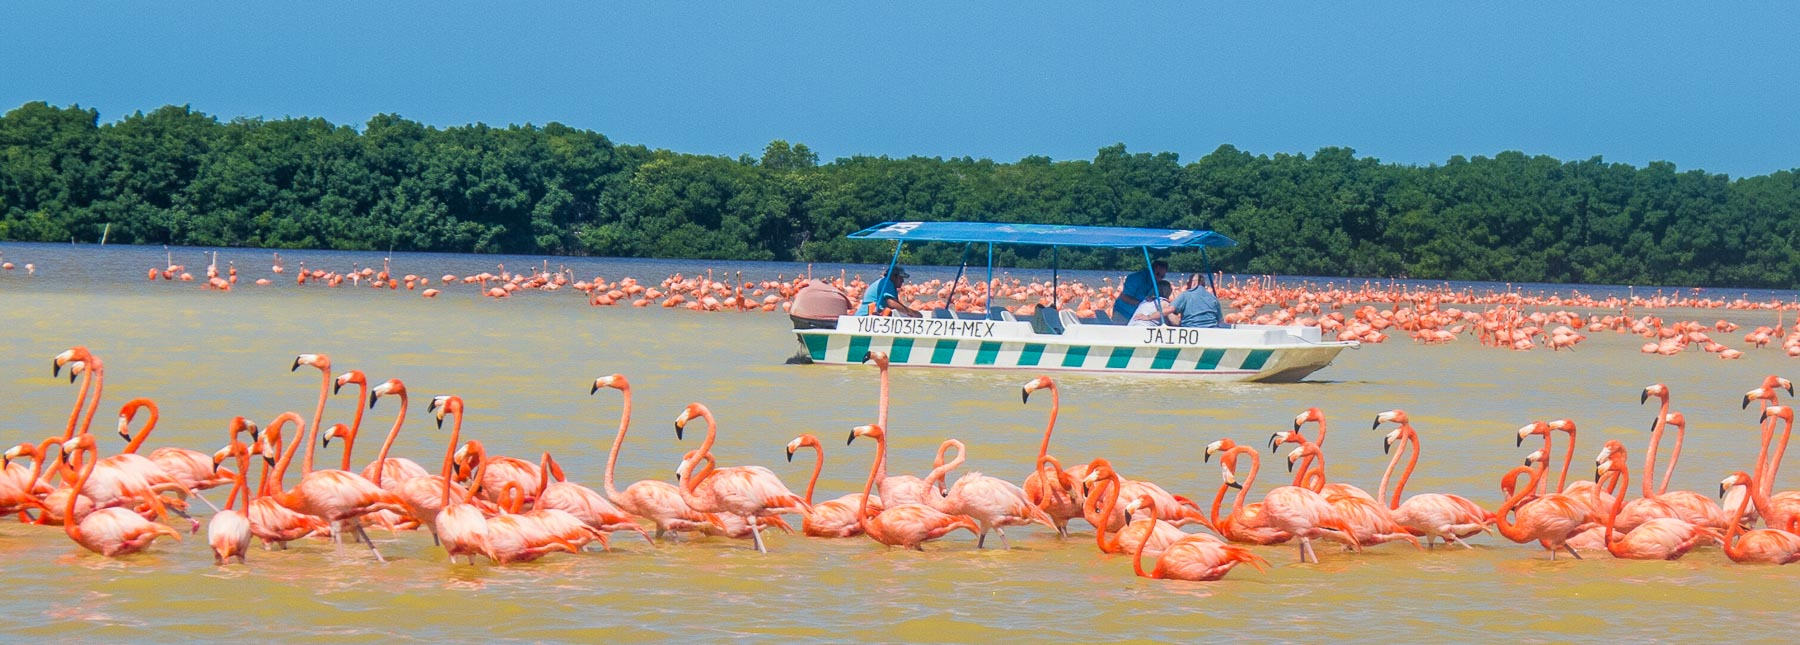 Hundreds of flamingos in Celestún.